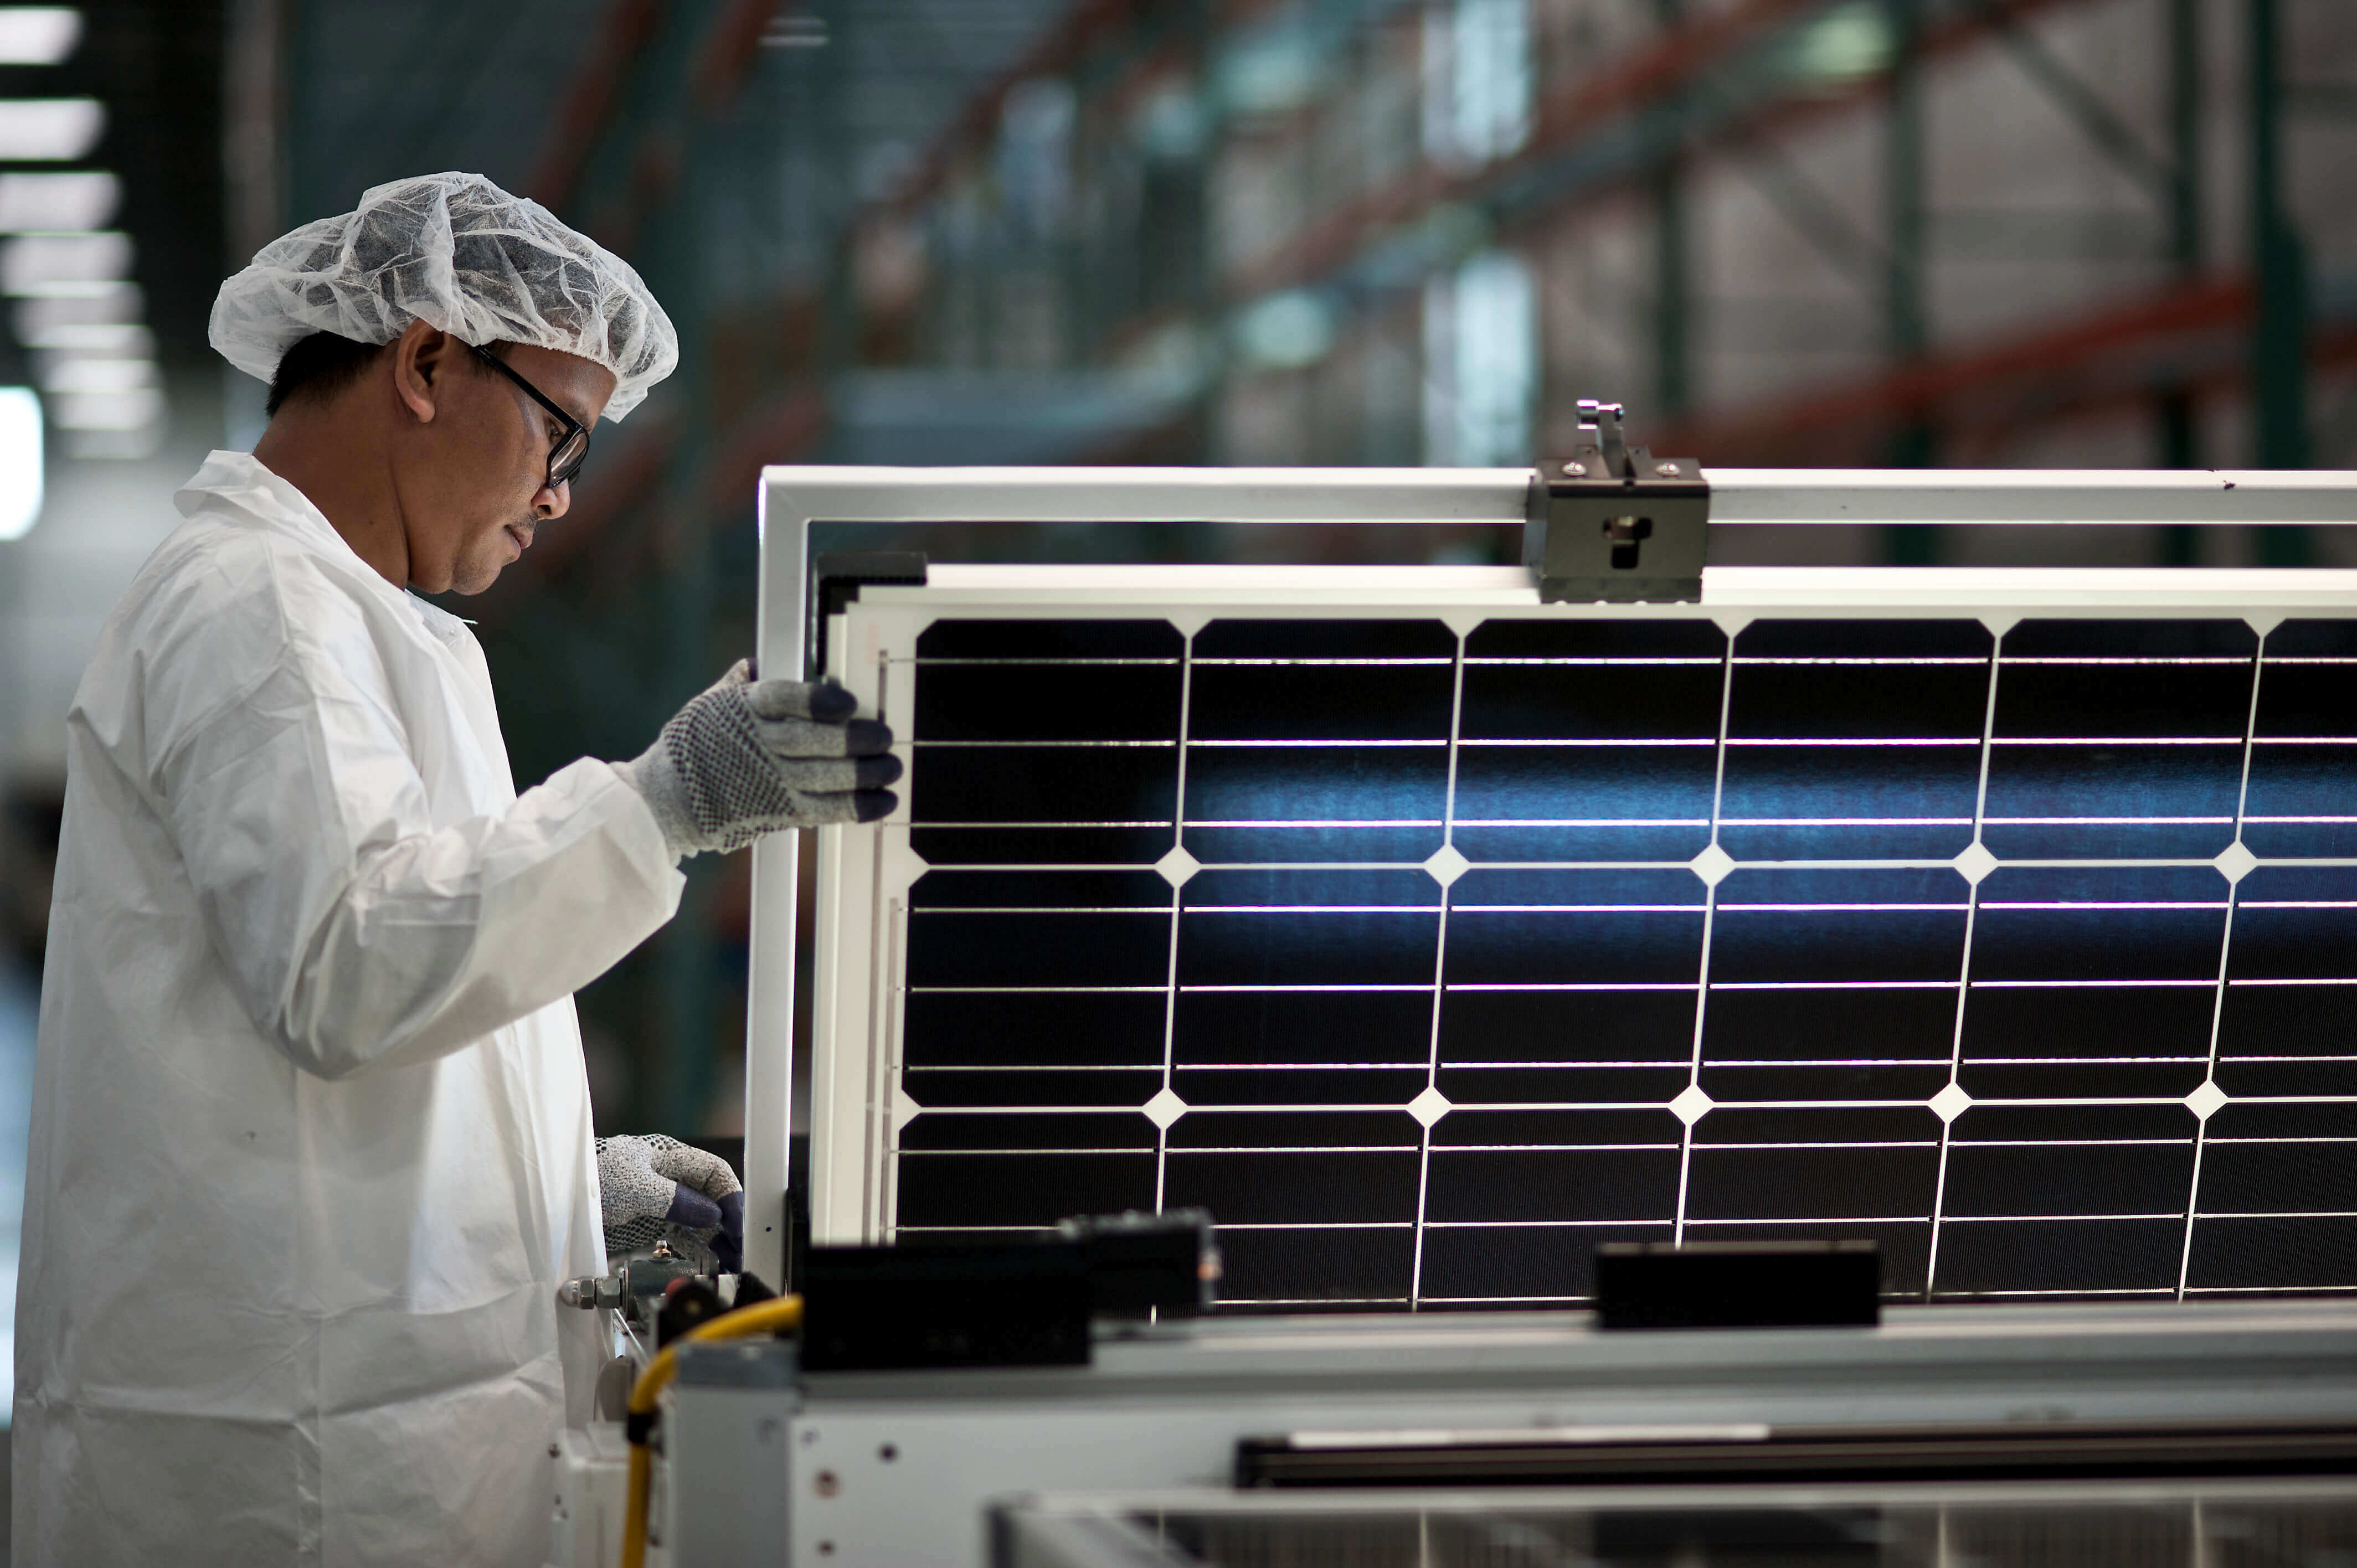 solarworld-1 SolarWorld Americas Warns Workers About Impending Mass Layoff